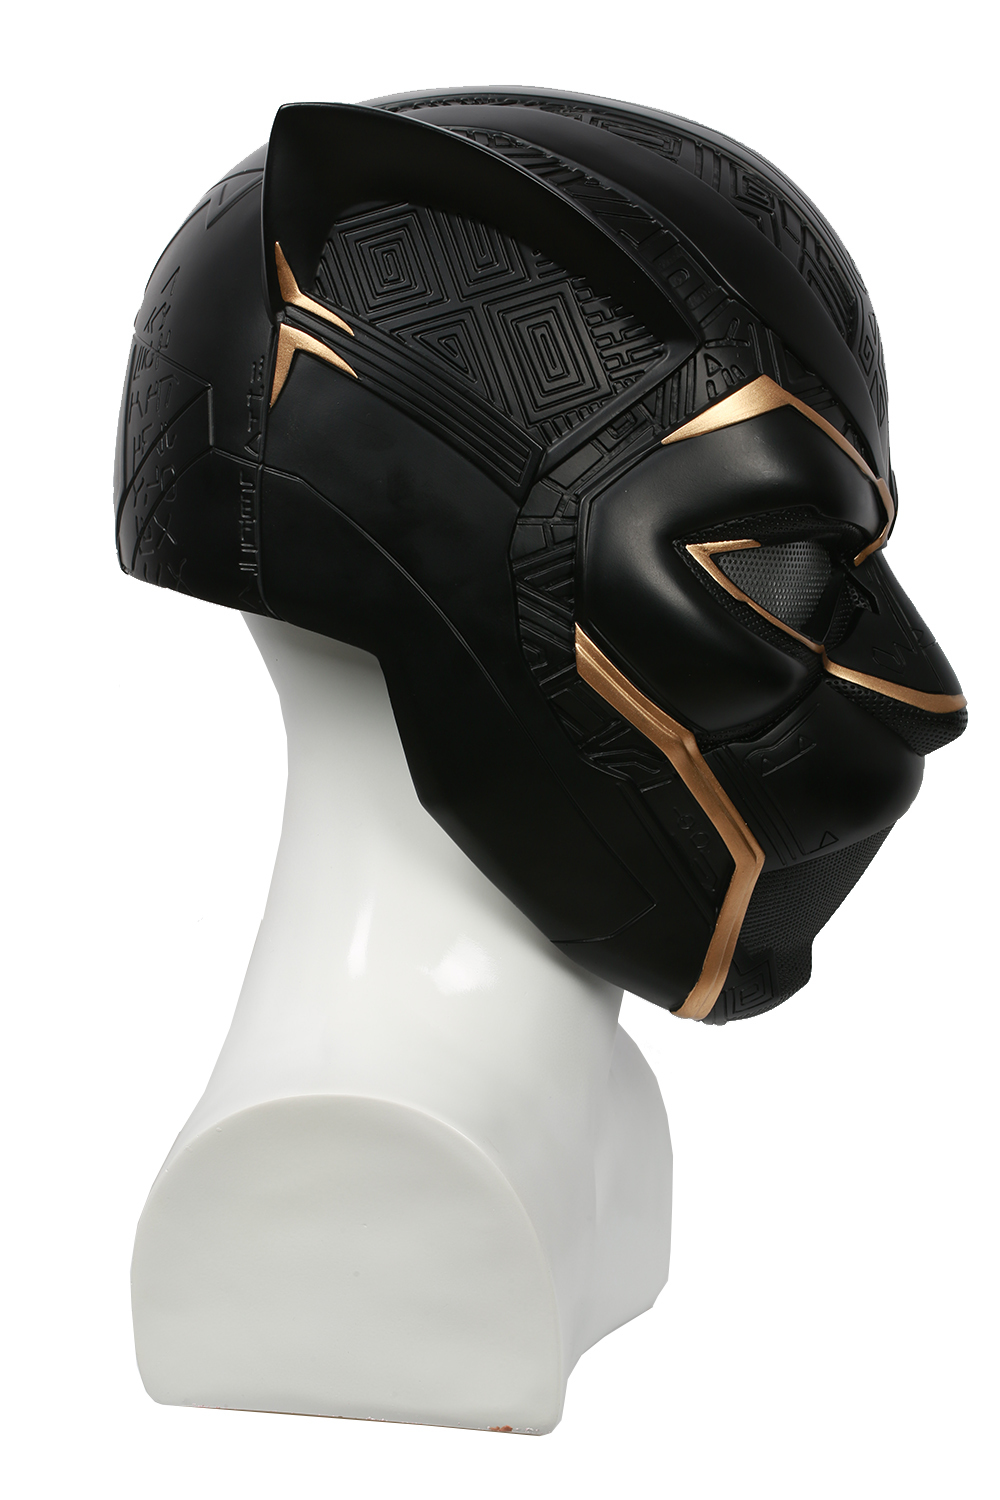 2018 Updated Movie Black Panther Movie Cosplay Black Panther Fullhead Helmet